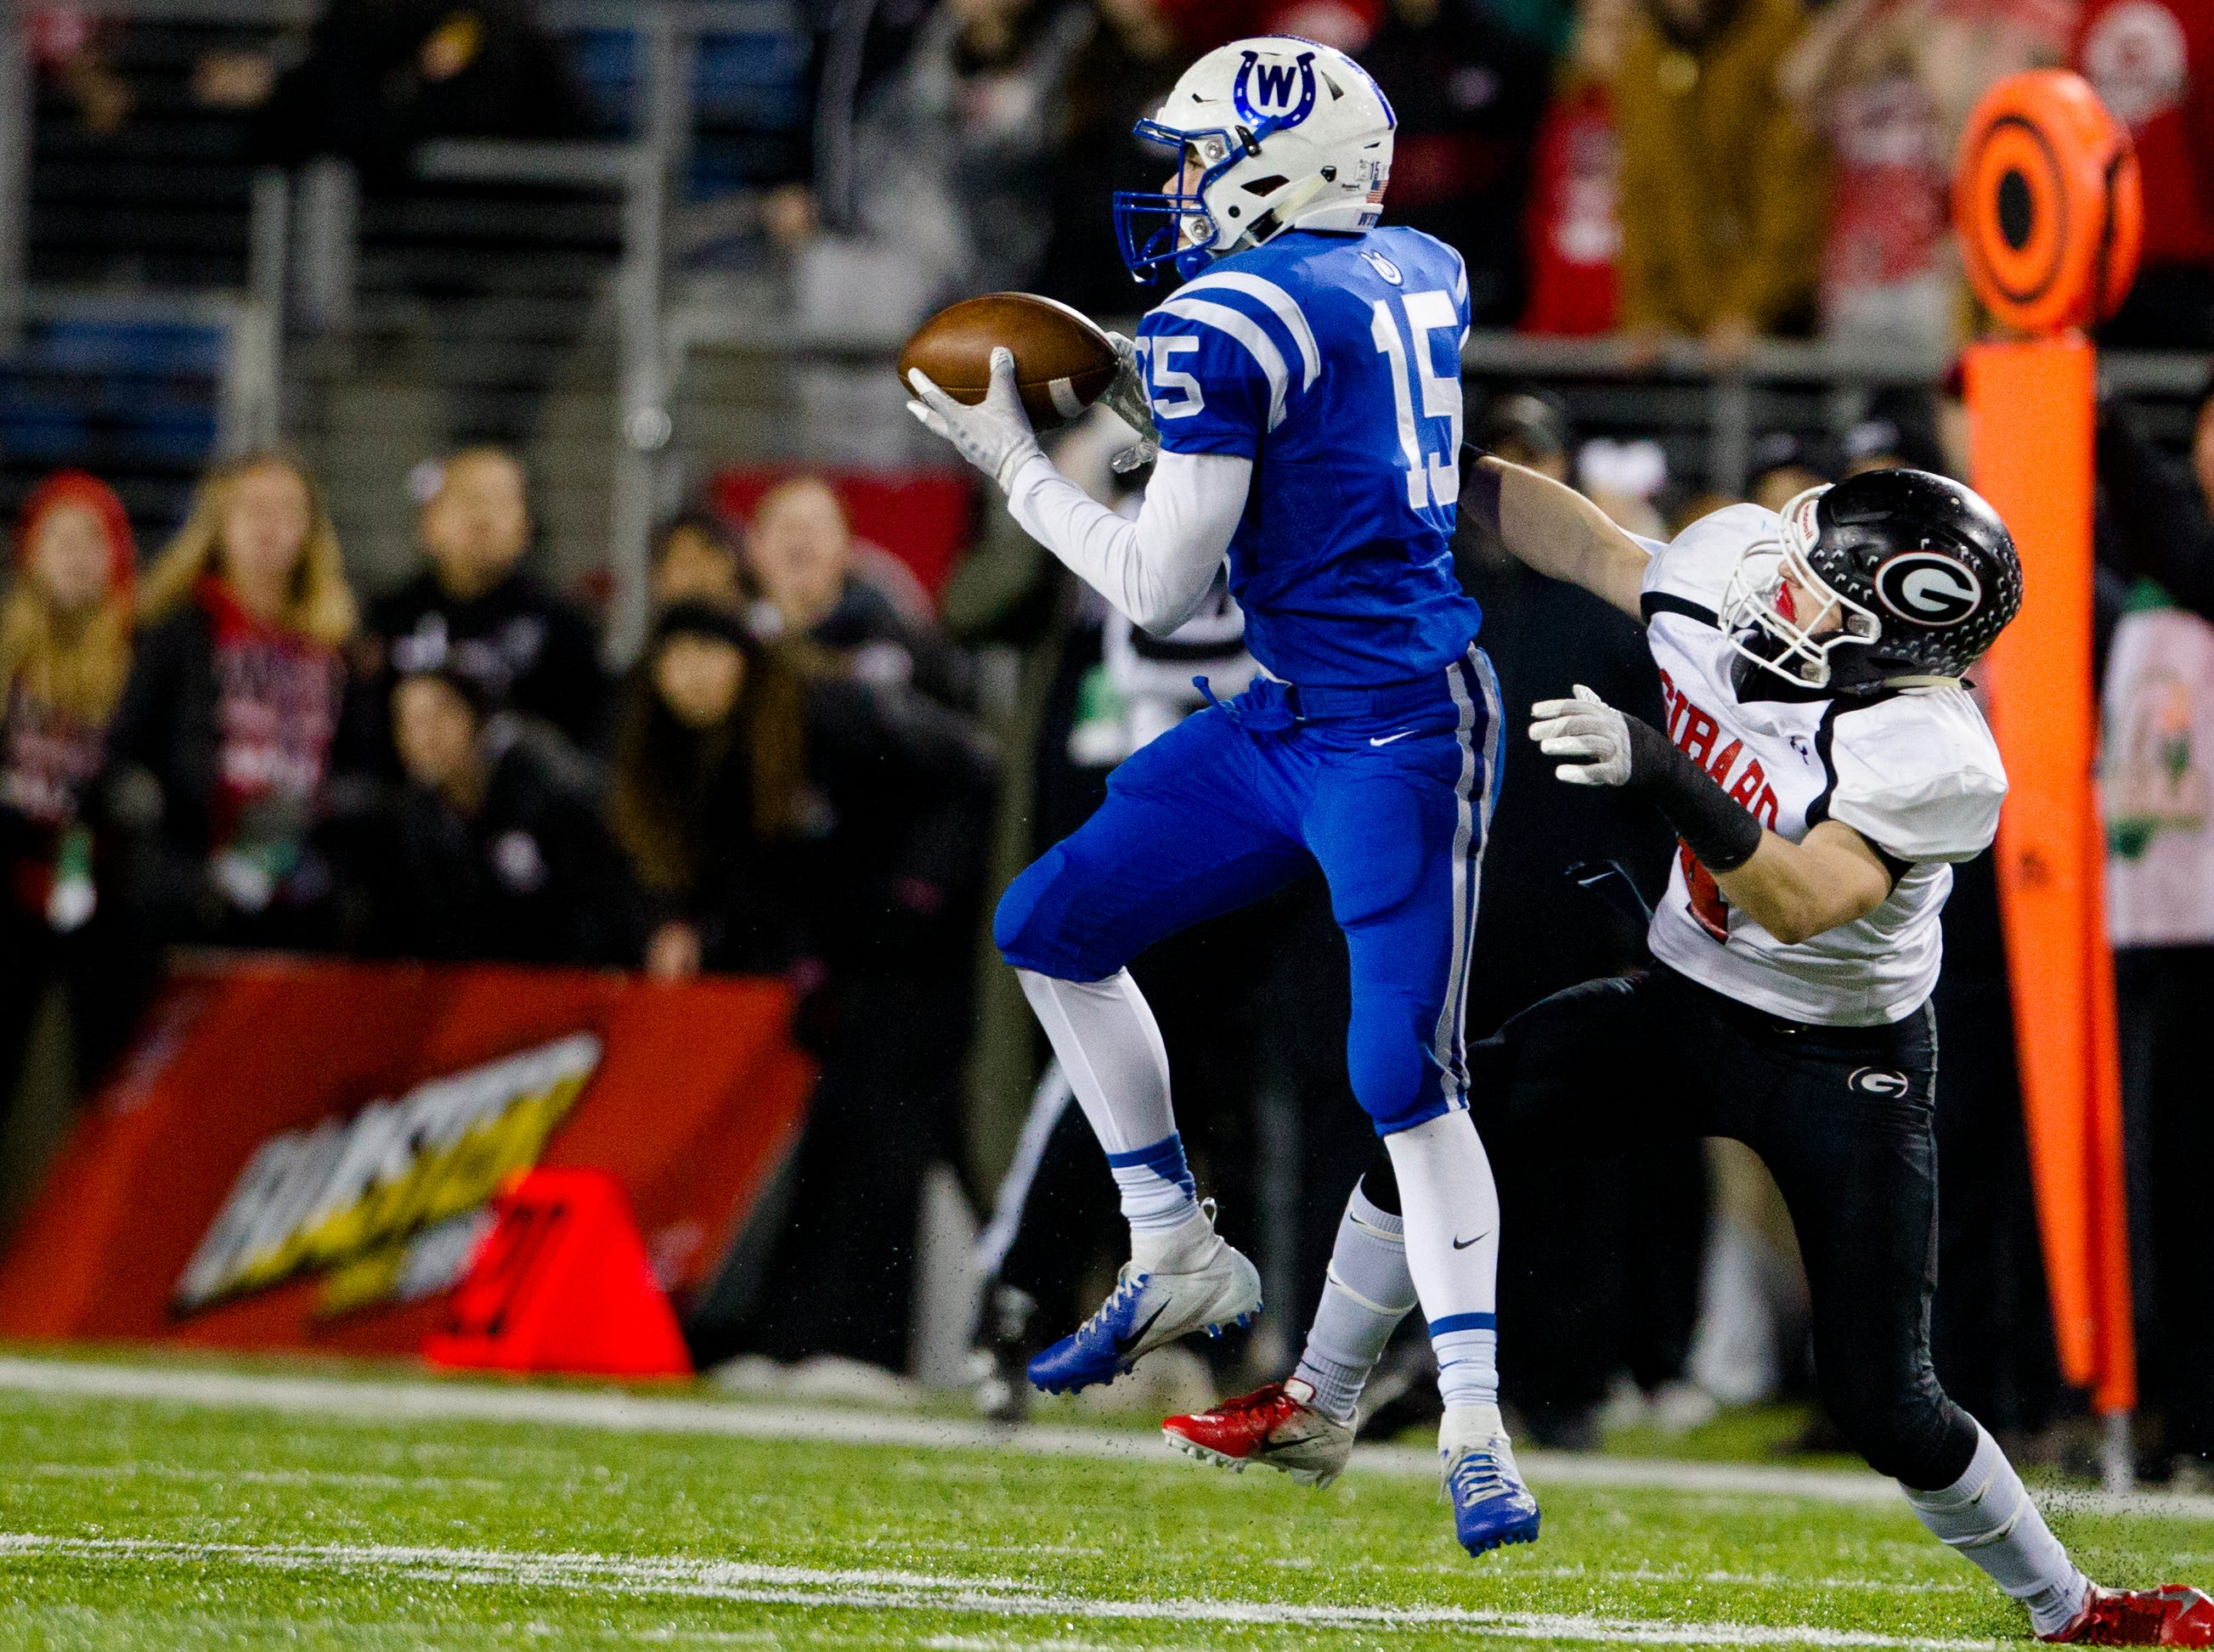 Wyoming's Perry McMichen (15) catches a pass during the second half of the OHSAA Division IV State Championship football game between Wyoming and Girard on Saturday, Dec. 1, 2018, at Tom Benson Stadium in Canton.